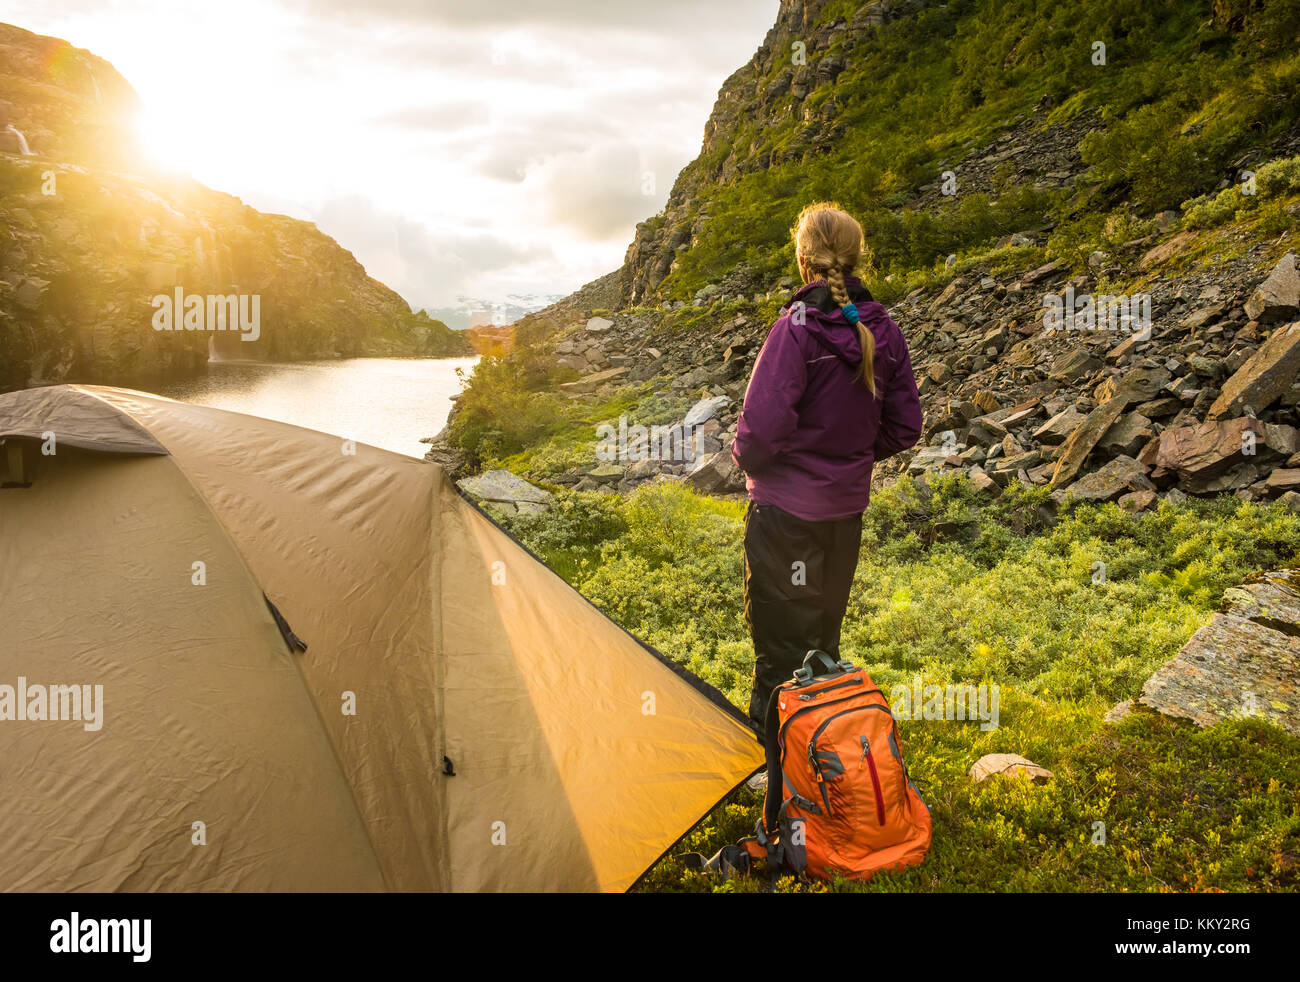 tourist tent and woman near mountain lake, summertime sunset, Norway - Stock Image